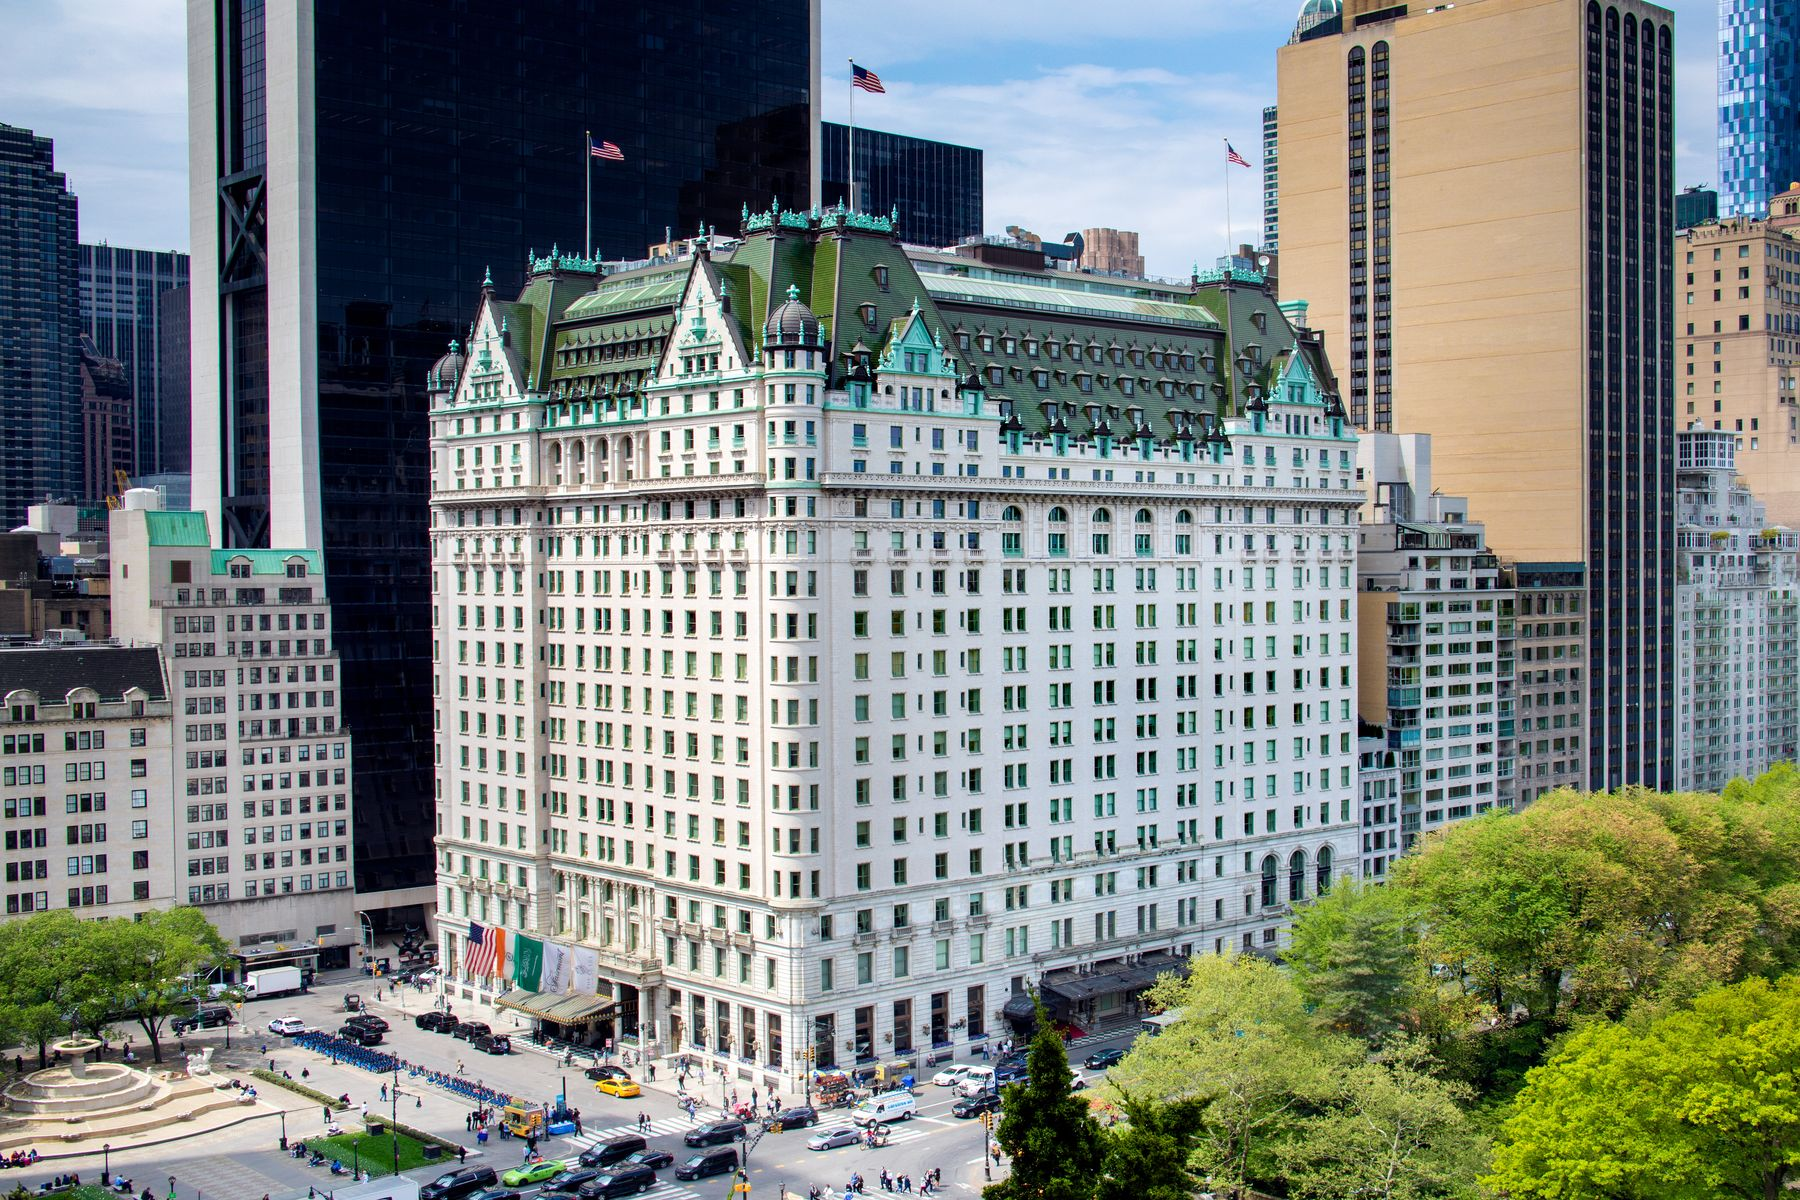 Property for Sale at The Plaza Hotel Condo 768 Fifth Avenue 1241 New York, New York 10019 United States